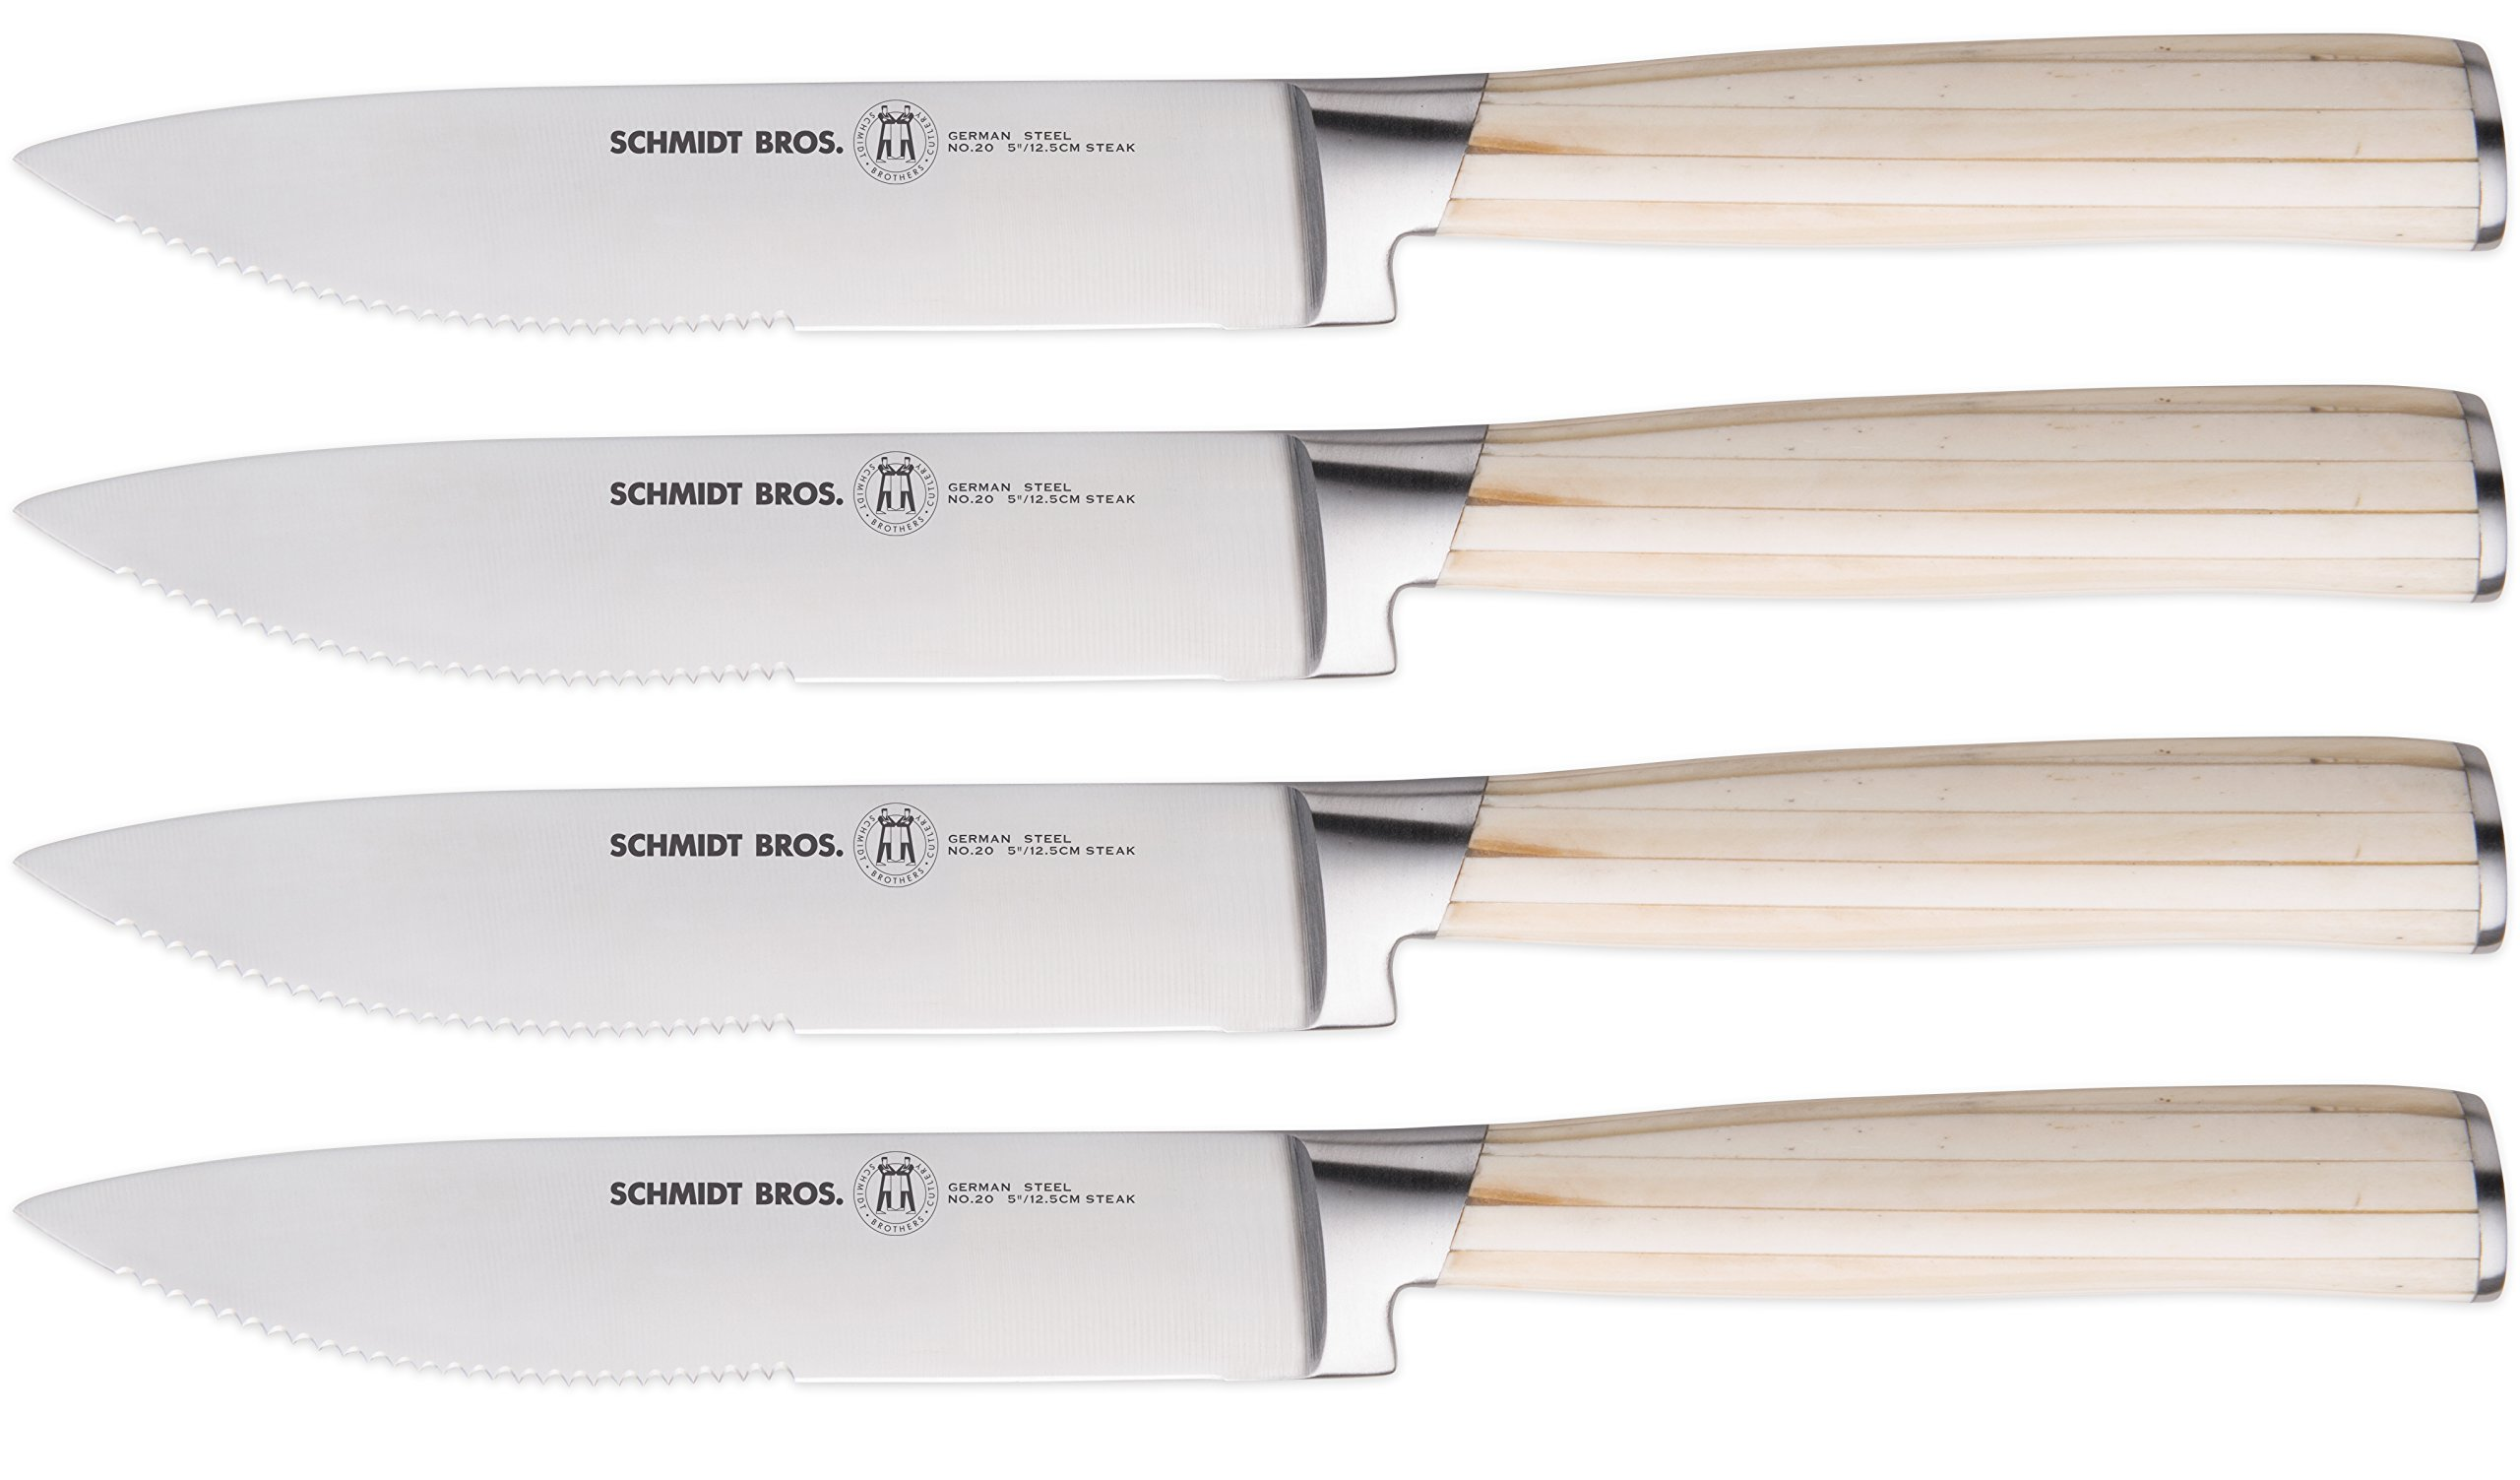 Hudson Home Schmidt Brothers Cutlery, SBBOSS4,#20 Bone 4pc steak set, White